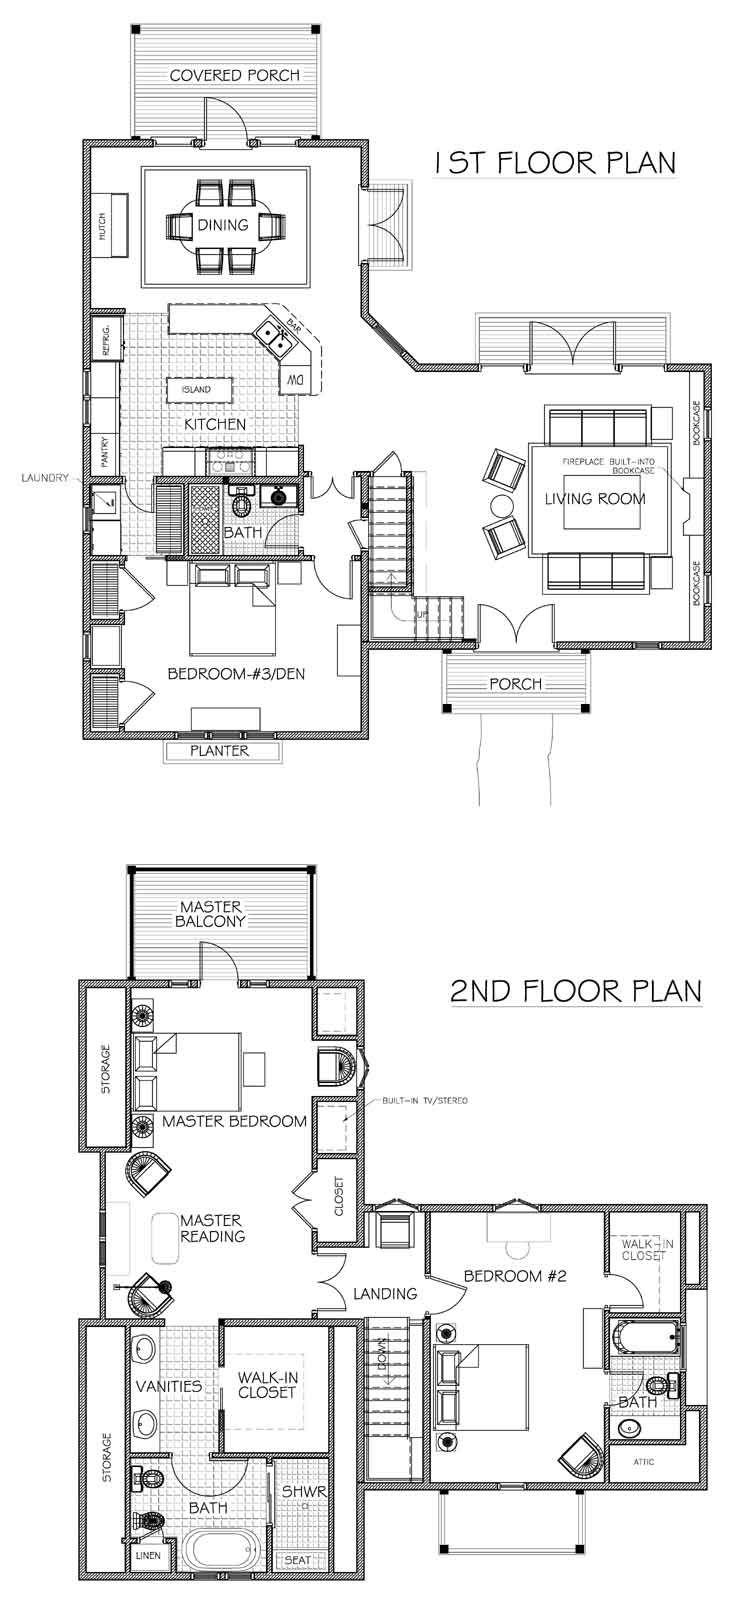 Old english cottages house plans house design plans for Old english cottage house plans